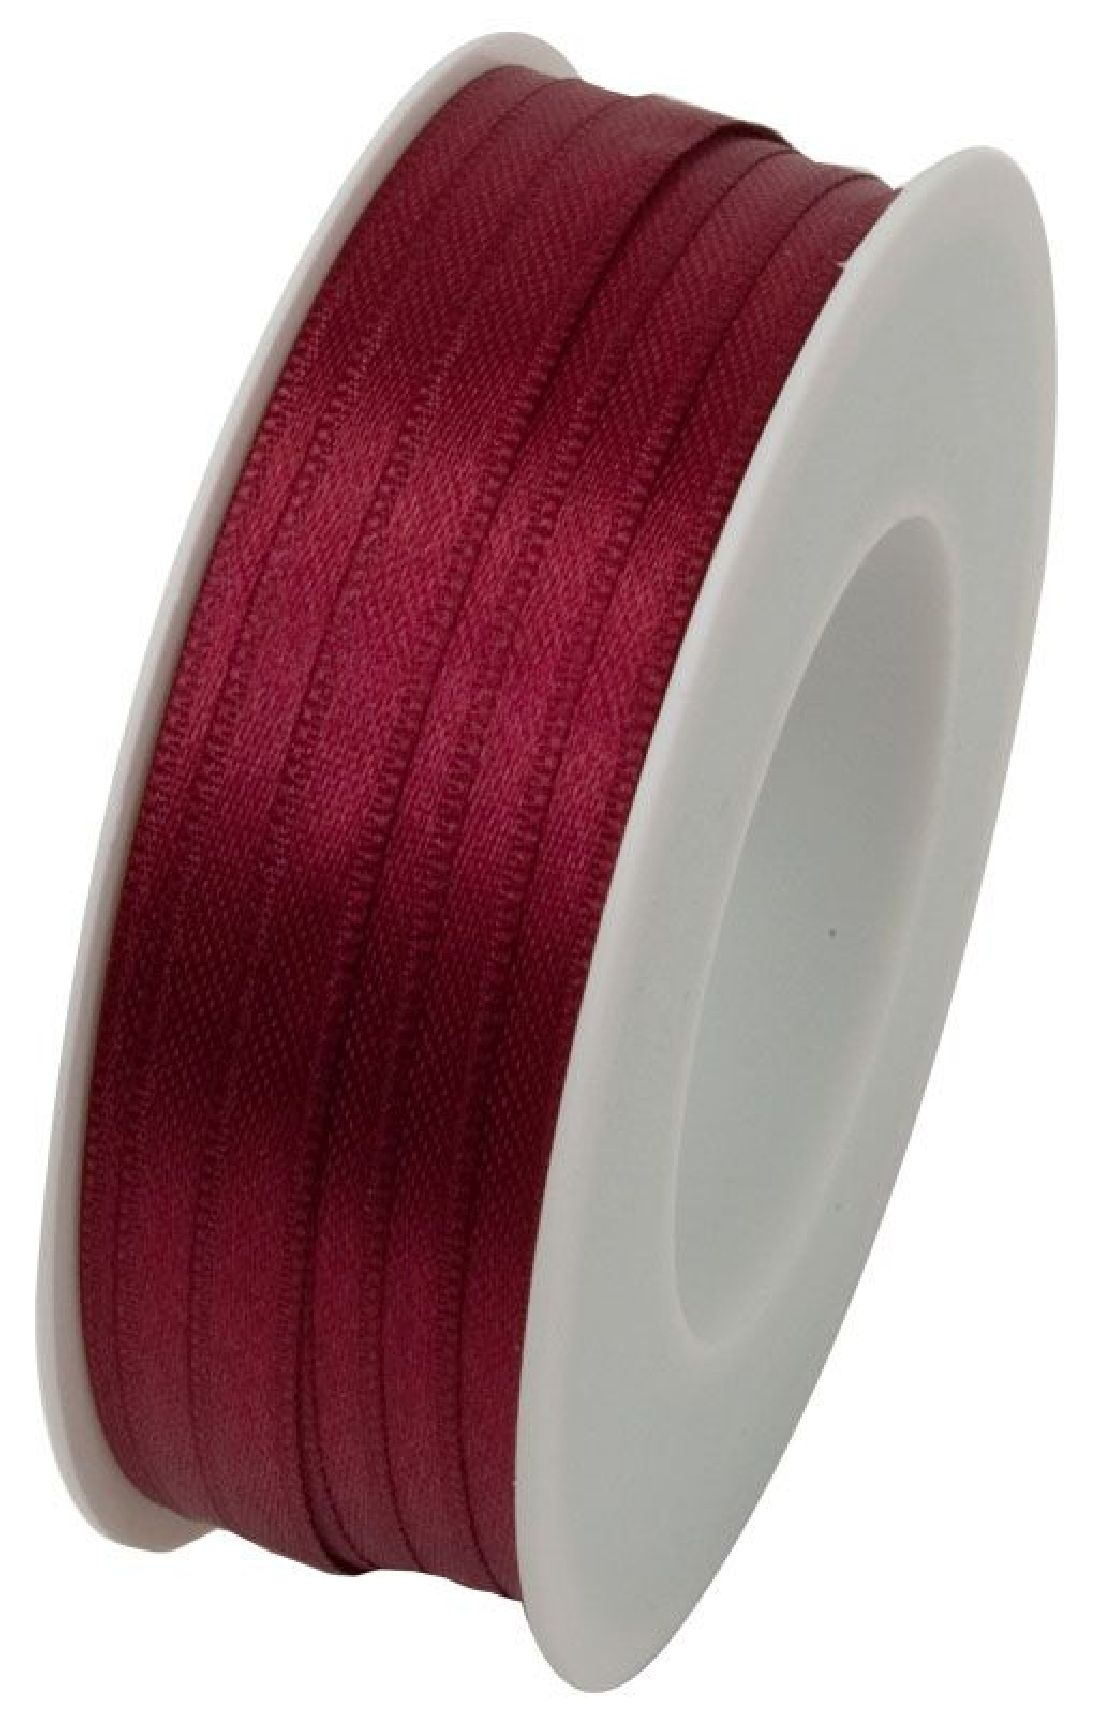 Doppelsatin BORDEAUX 26 6mm 50m